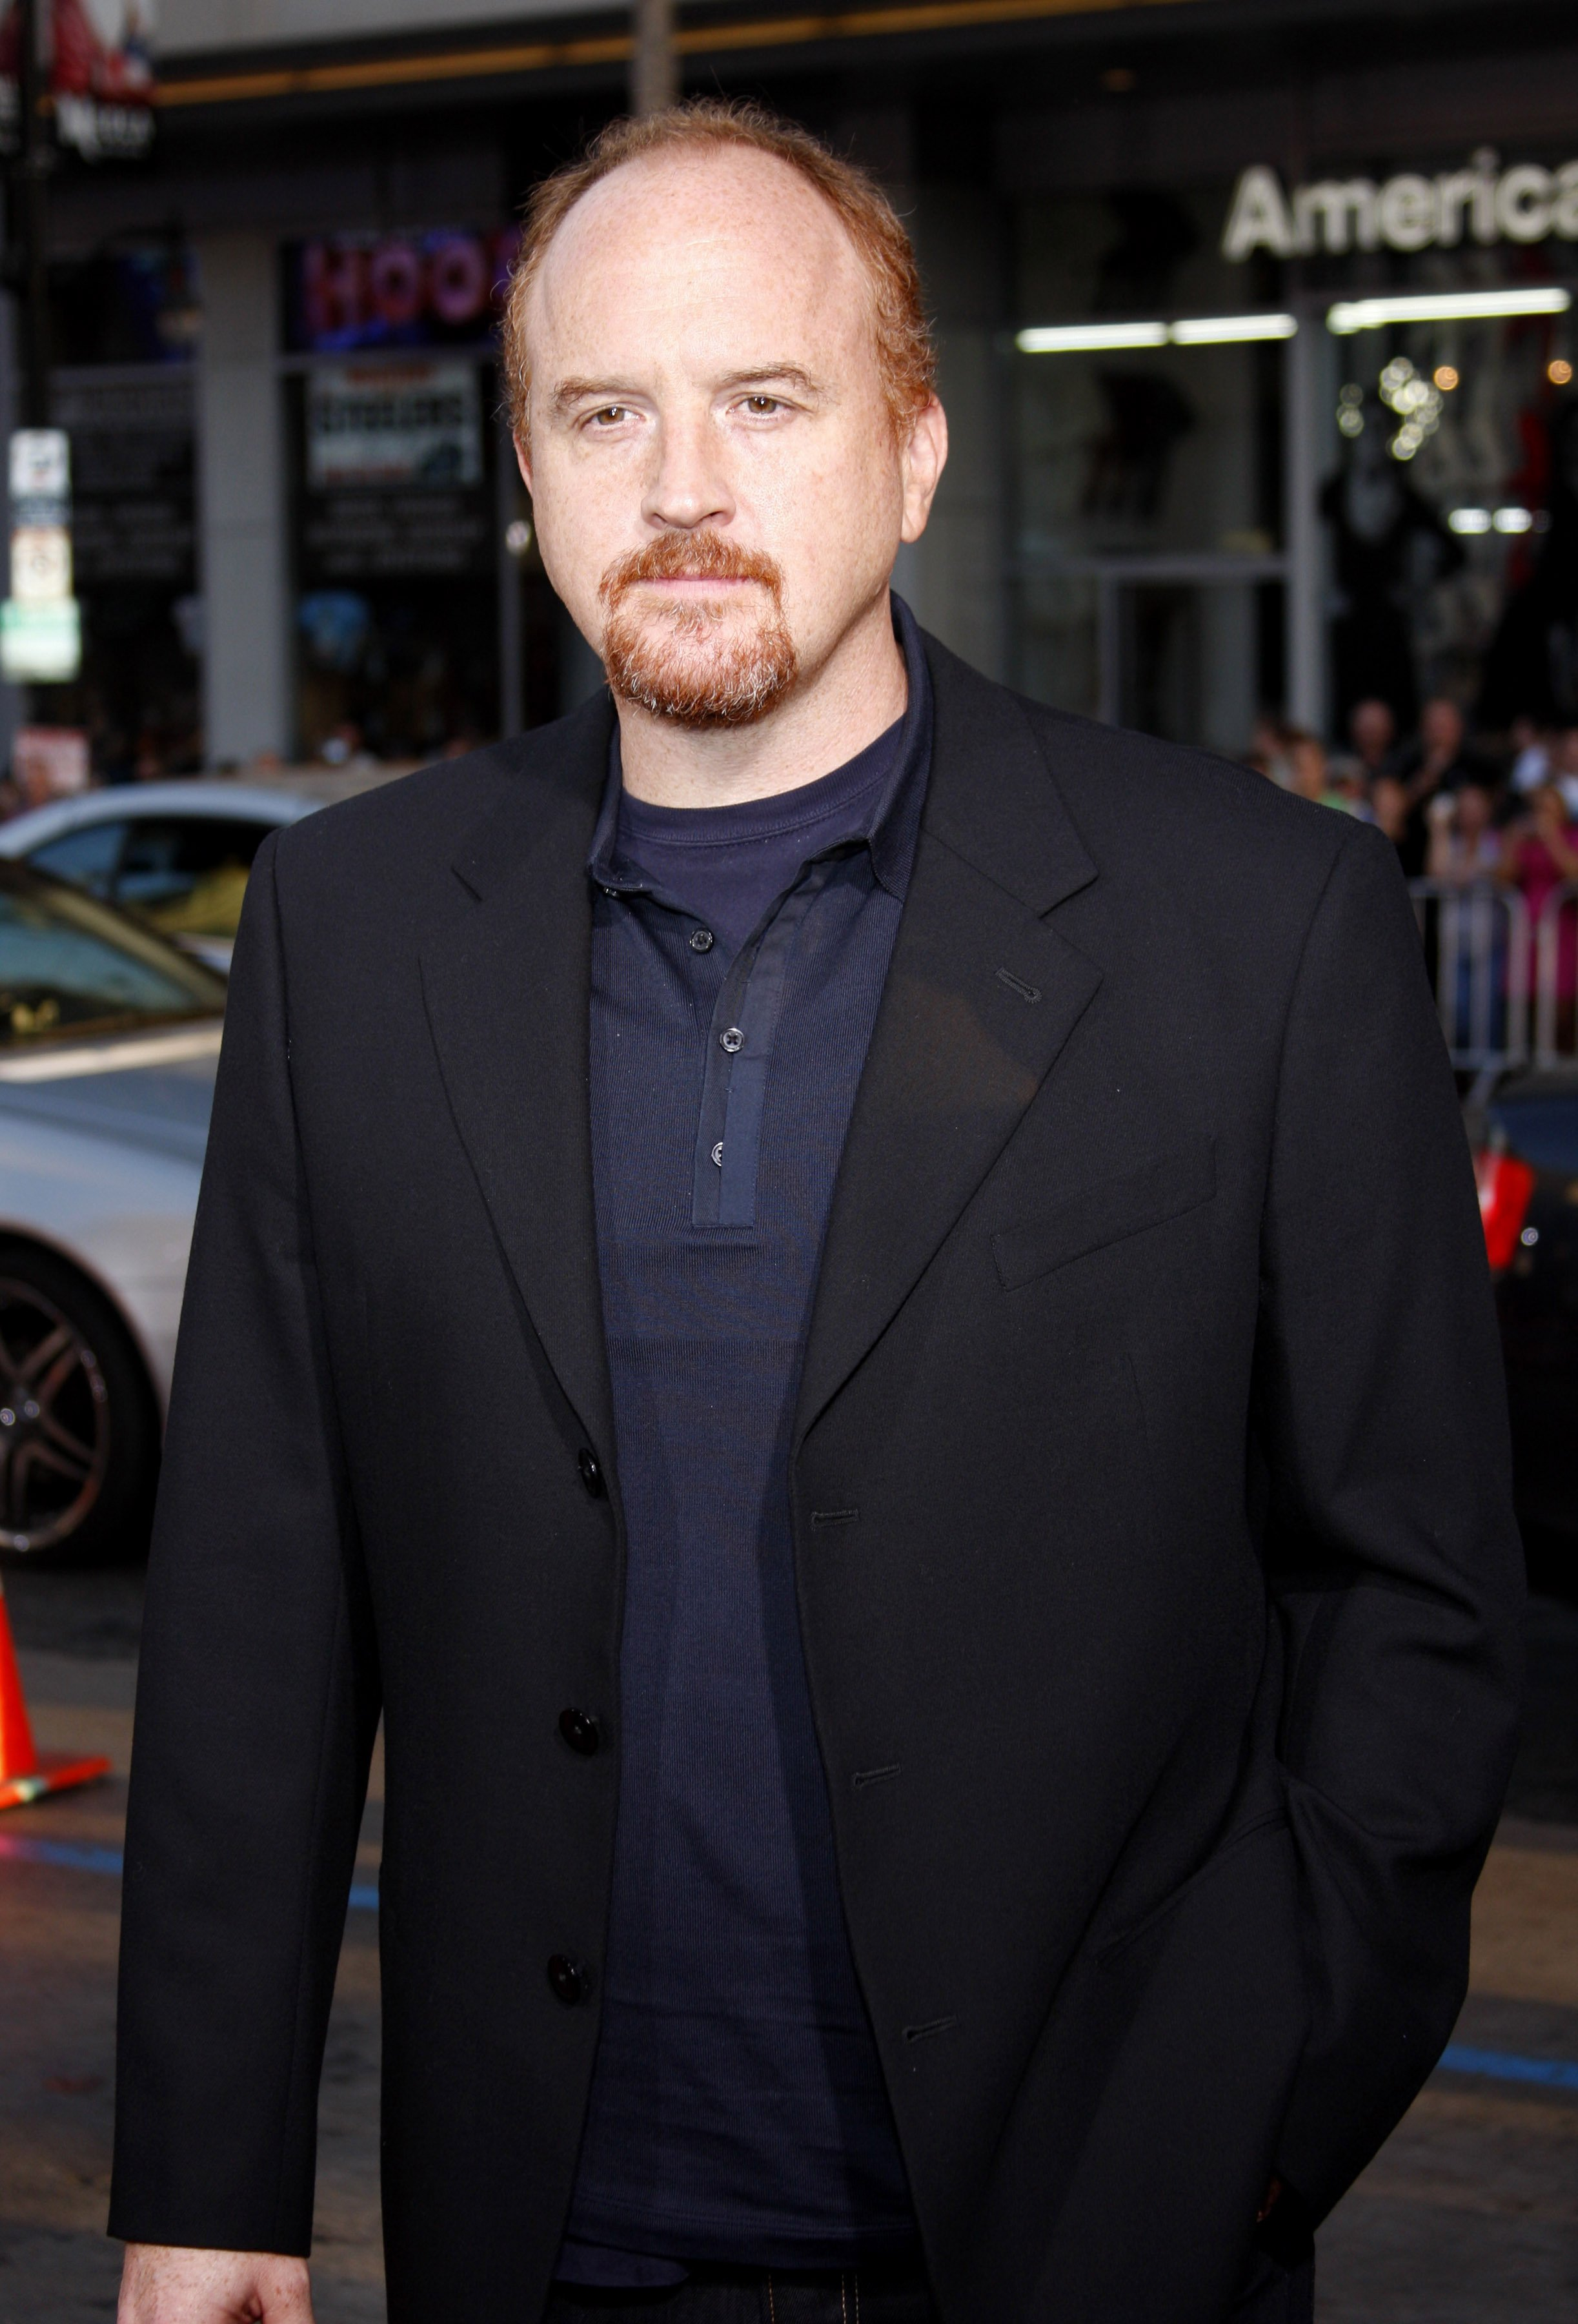 Louis C.K. at the Los Angeles premiere of 'The invention of lying.' | Image credit: Shutterstock